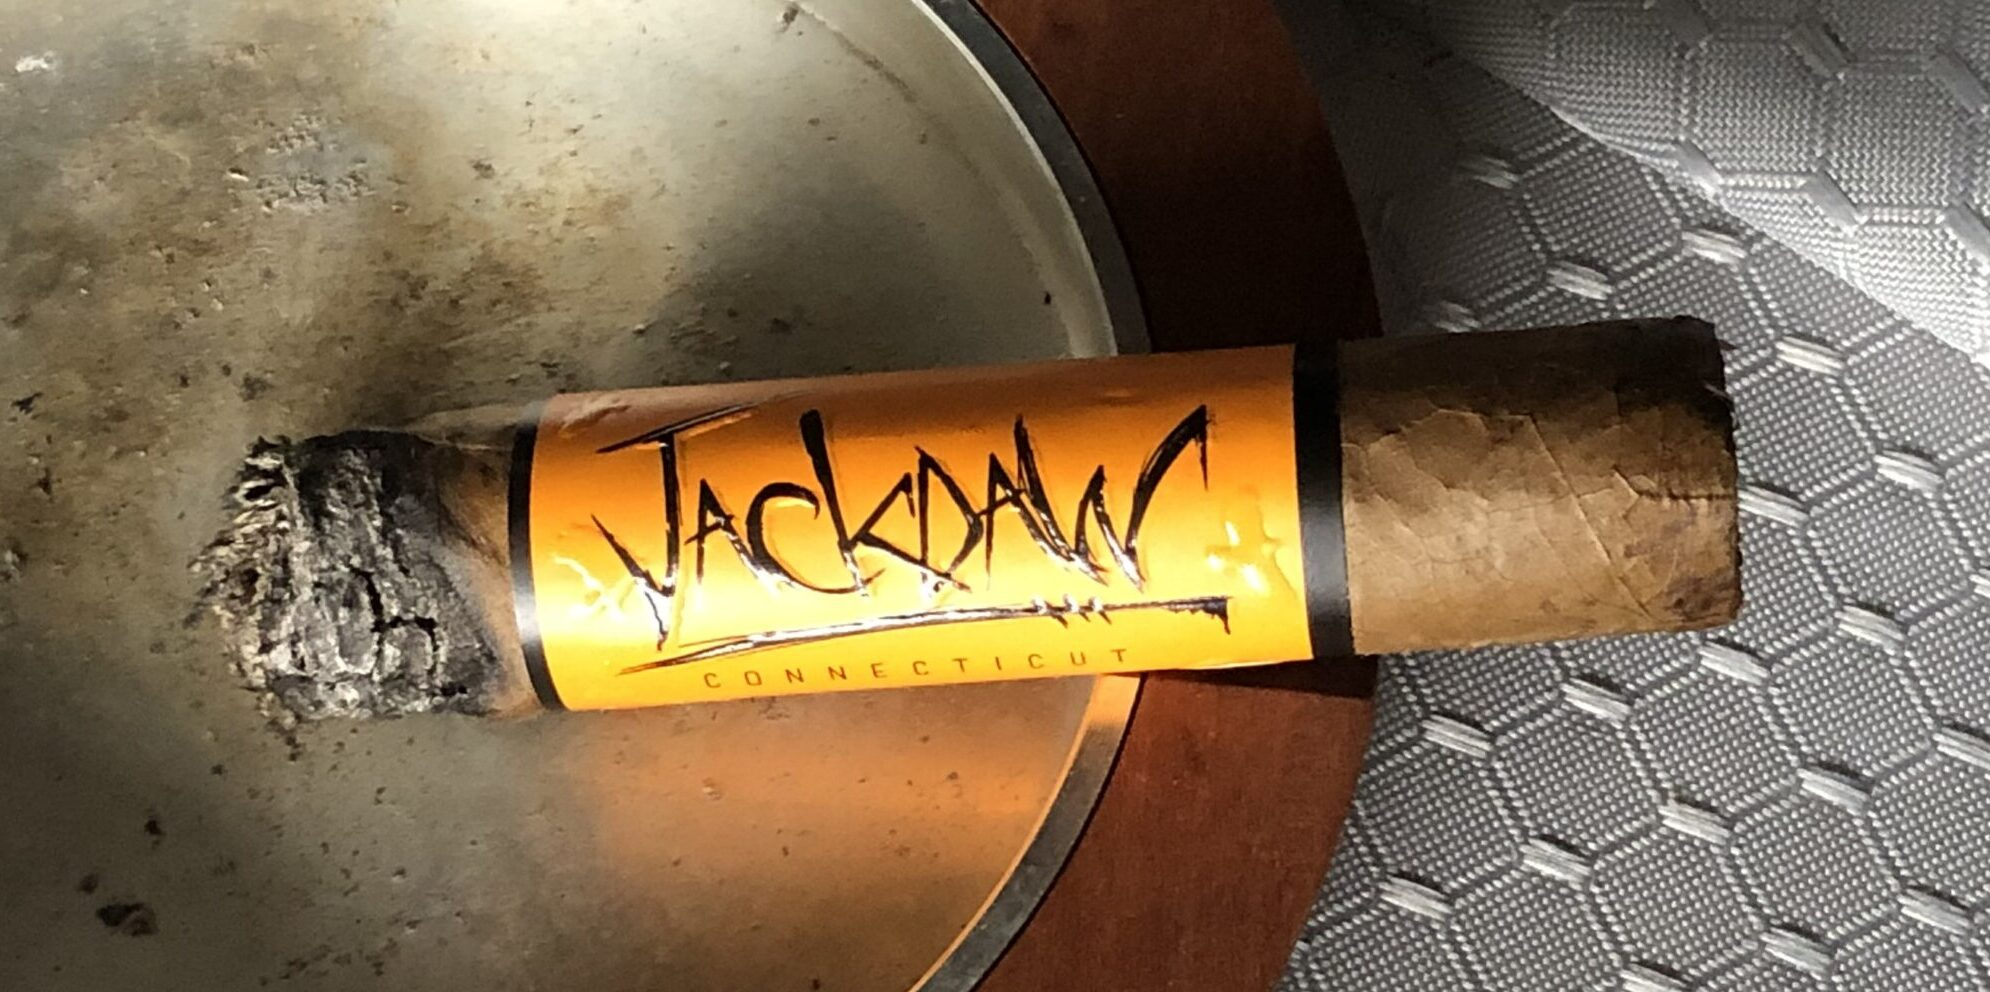 Read more about the article Blackbird Jackdaw Robusto Cigar Review